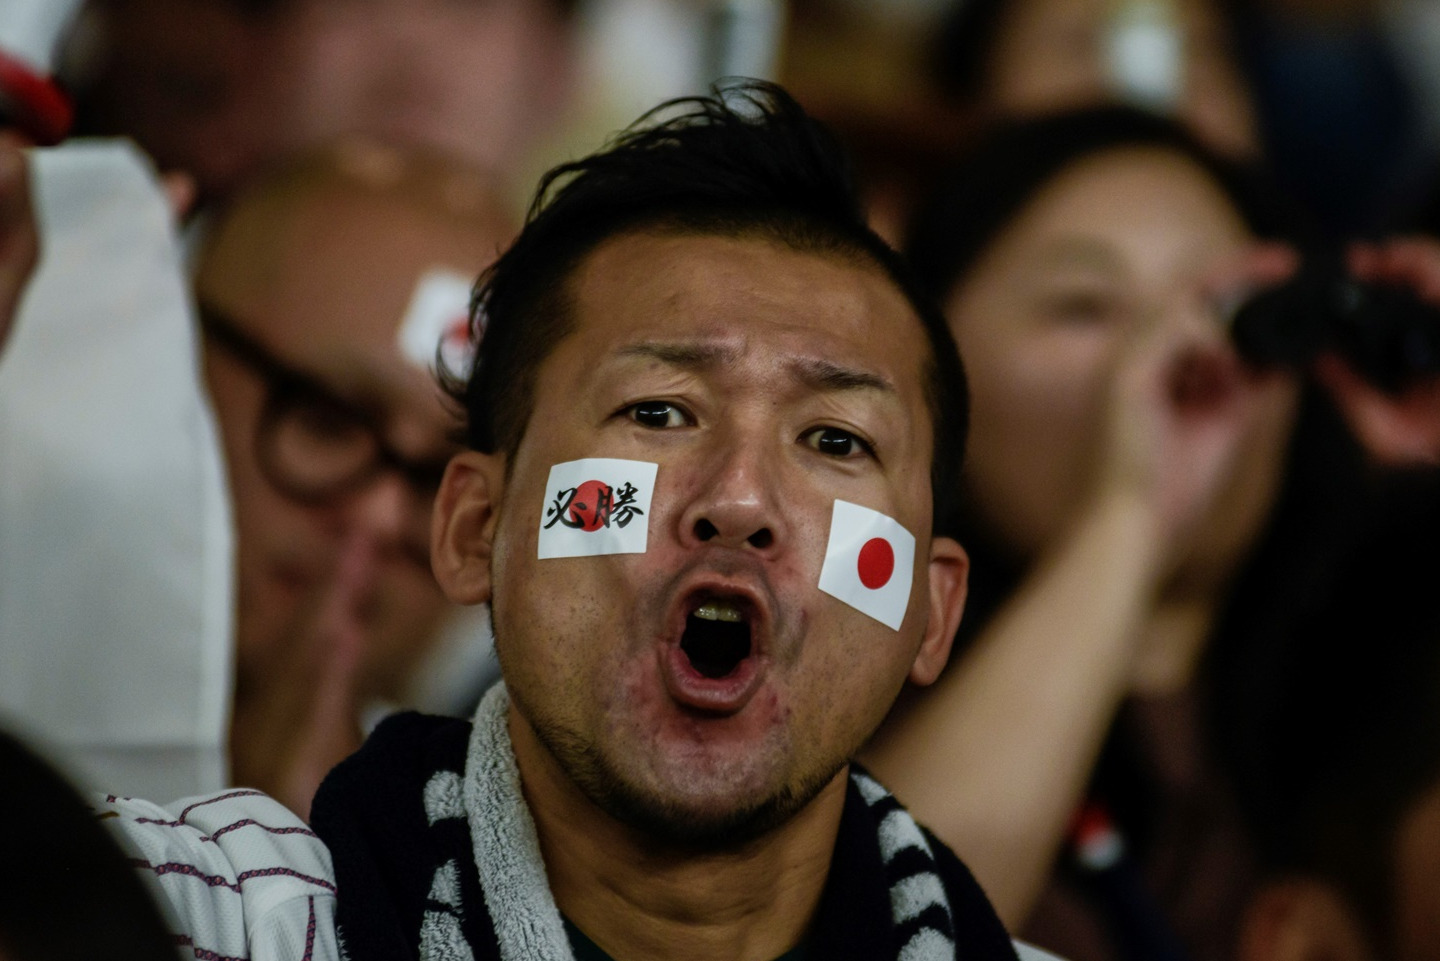 Japanese fans expressed all of their enthusiasm